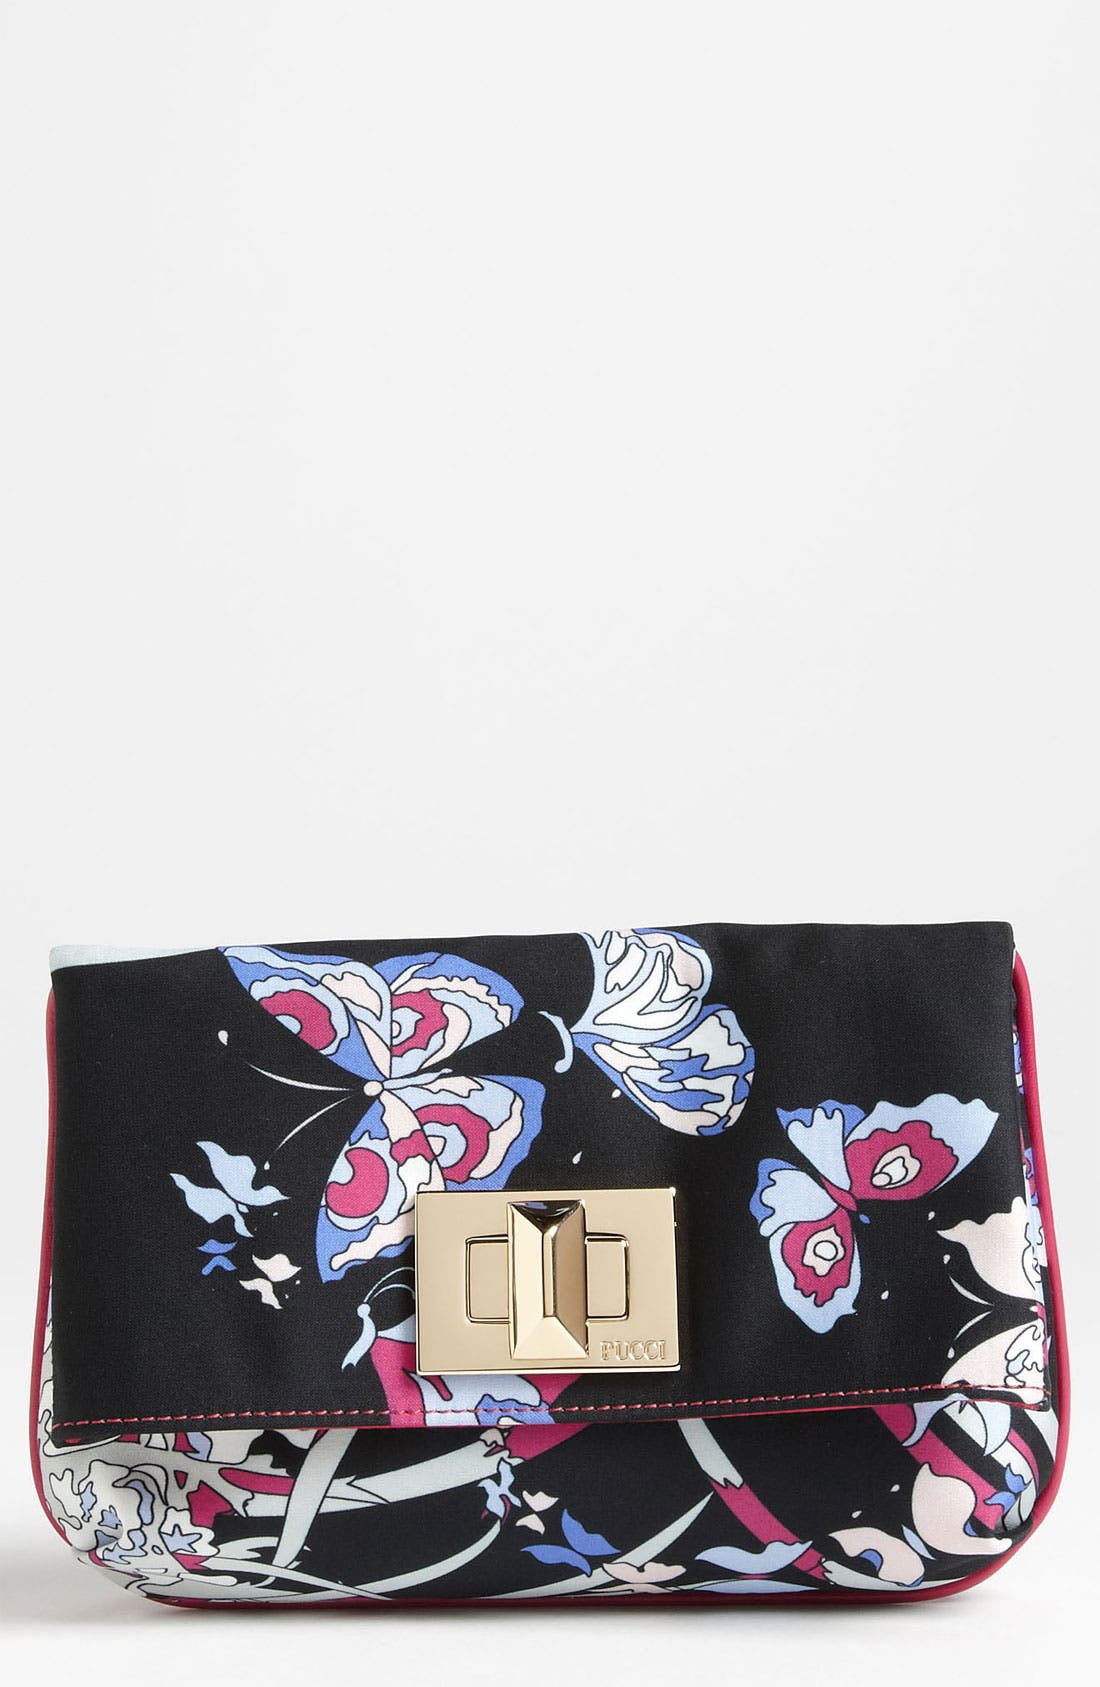 Alternate Image 1 Selected - Emilio Pucci 'Butterfly' Fold Over Clutch